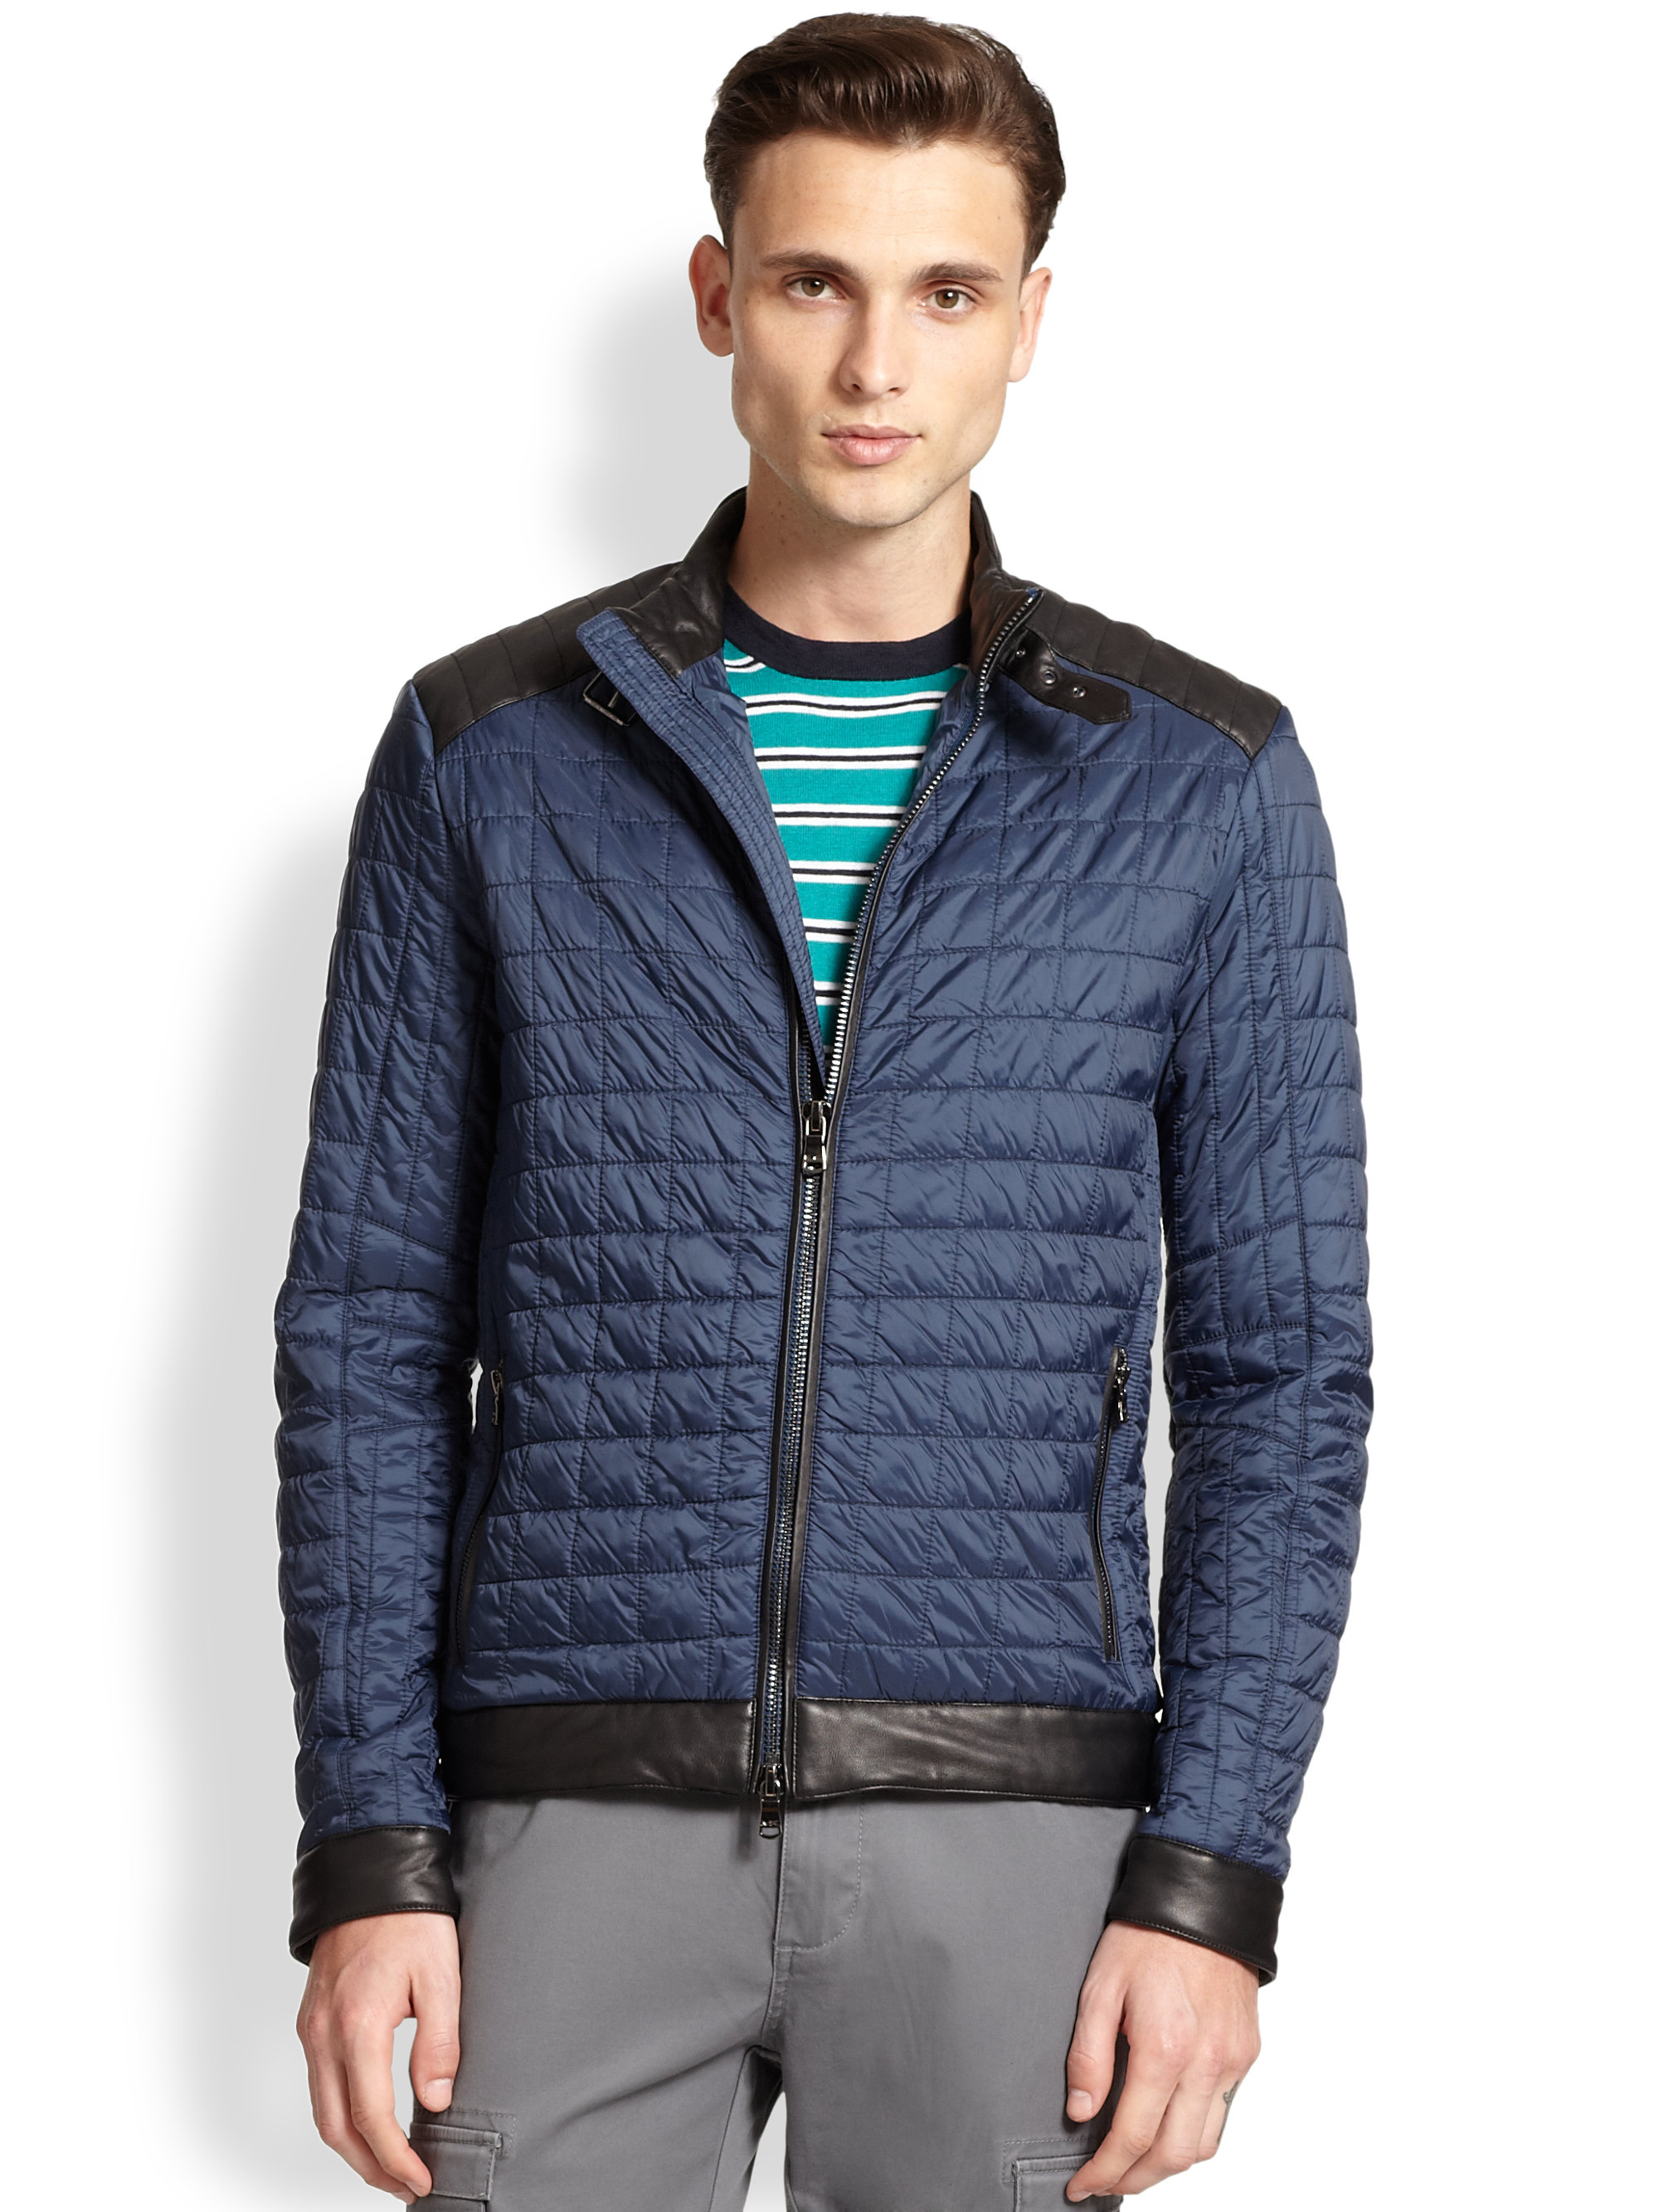 Michael Kors Quilted Jacket In Blue For Men Midnight Lyst